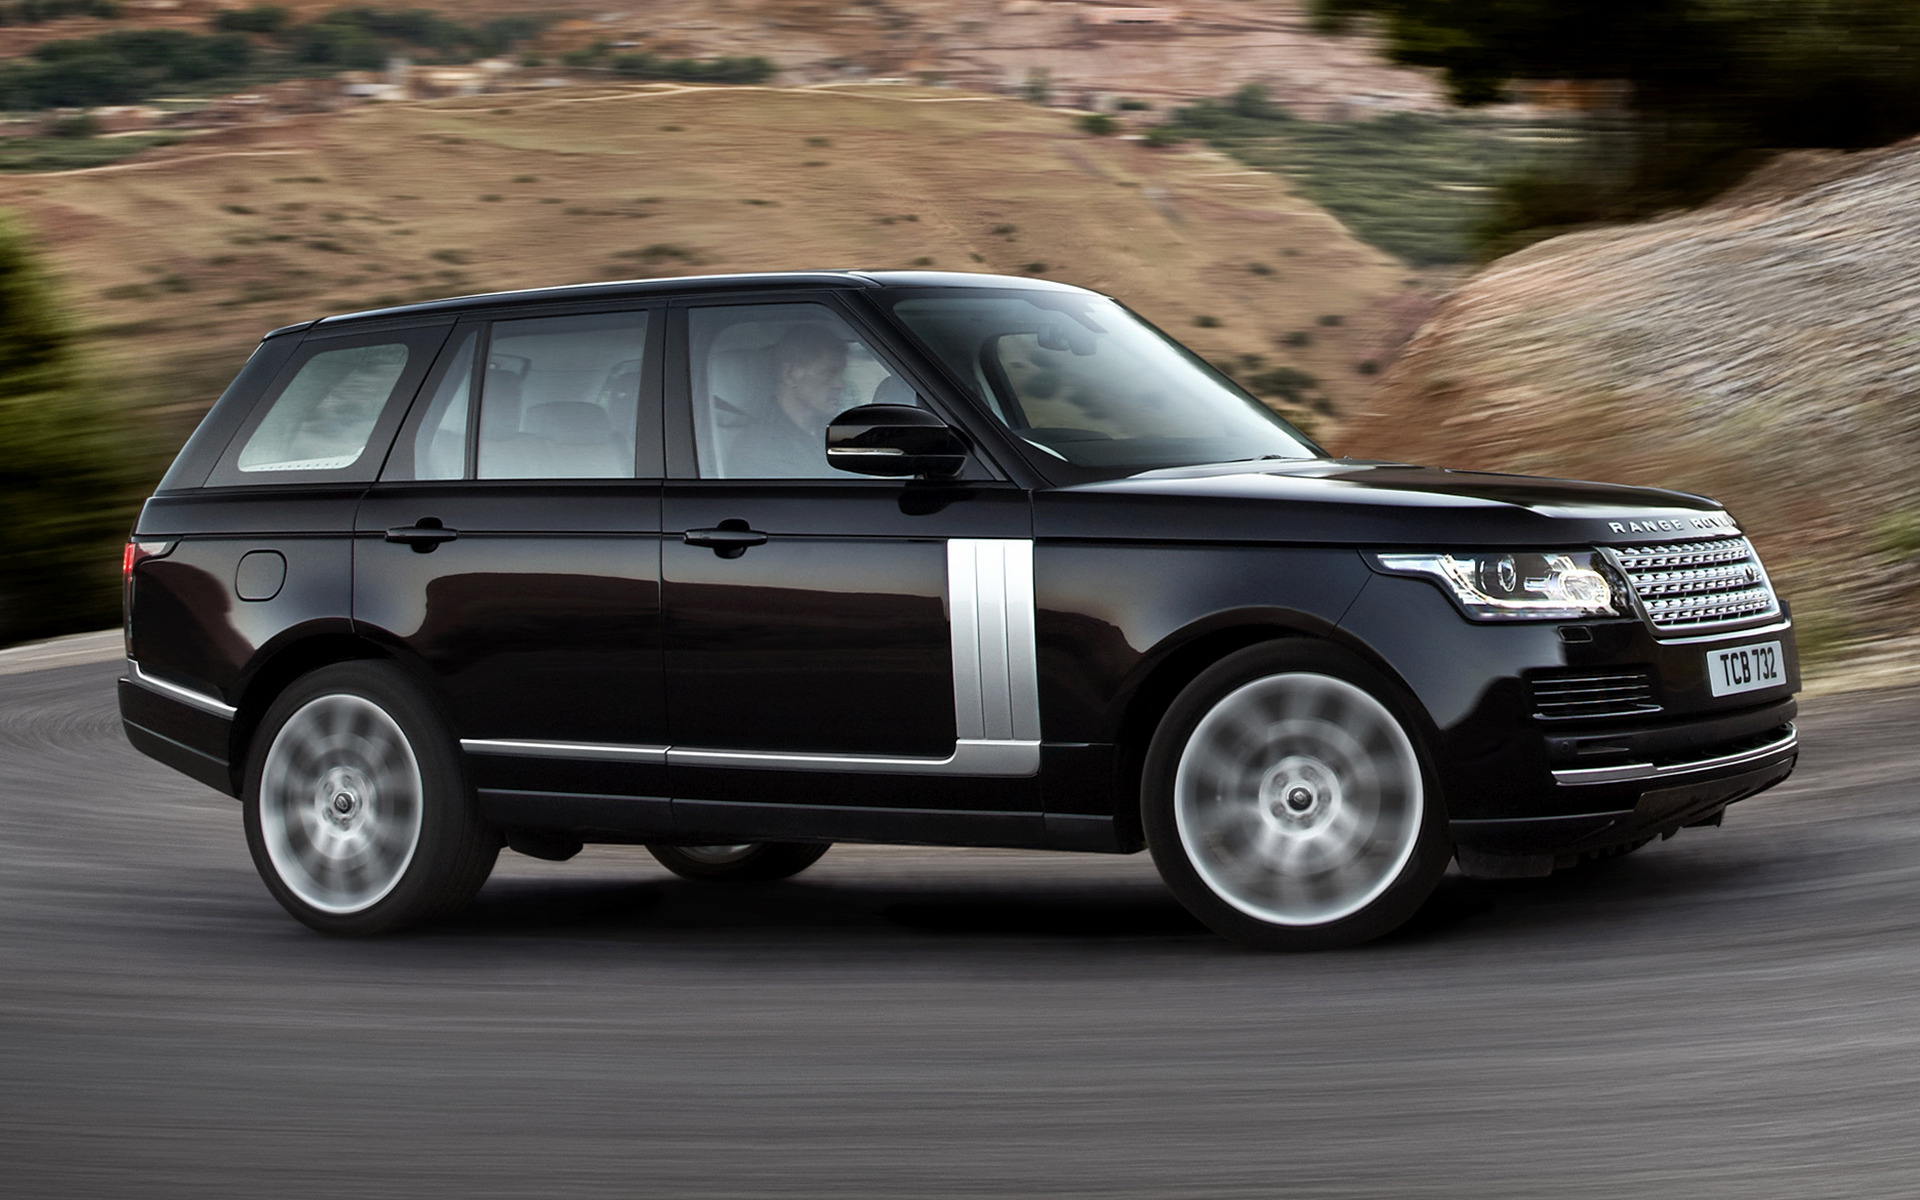 Land Rover Hse >> Range Rover Vogue (2012) UK Wallpapers and HD Images - Car ...